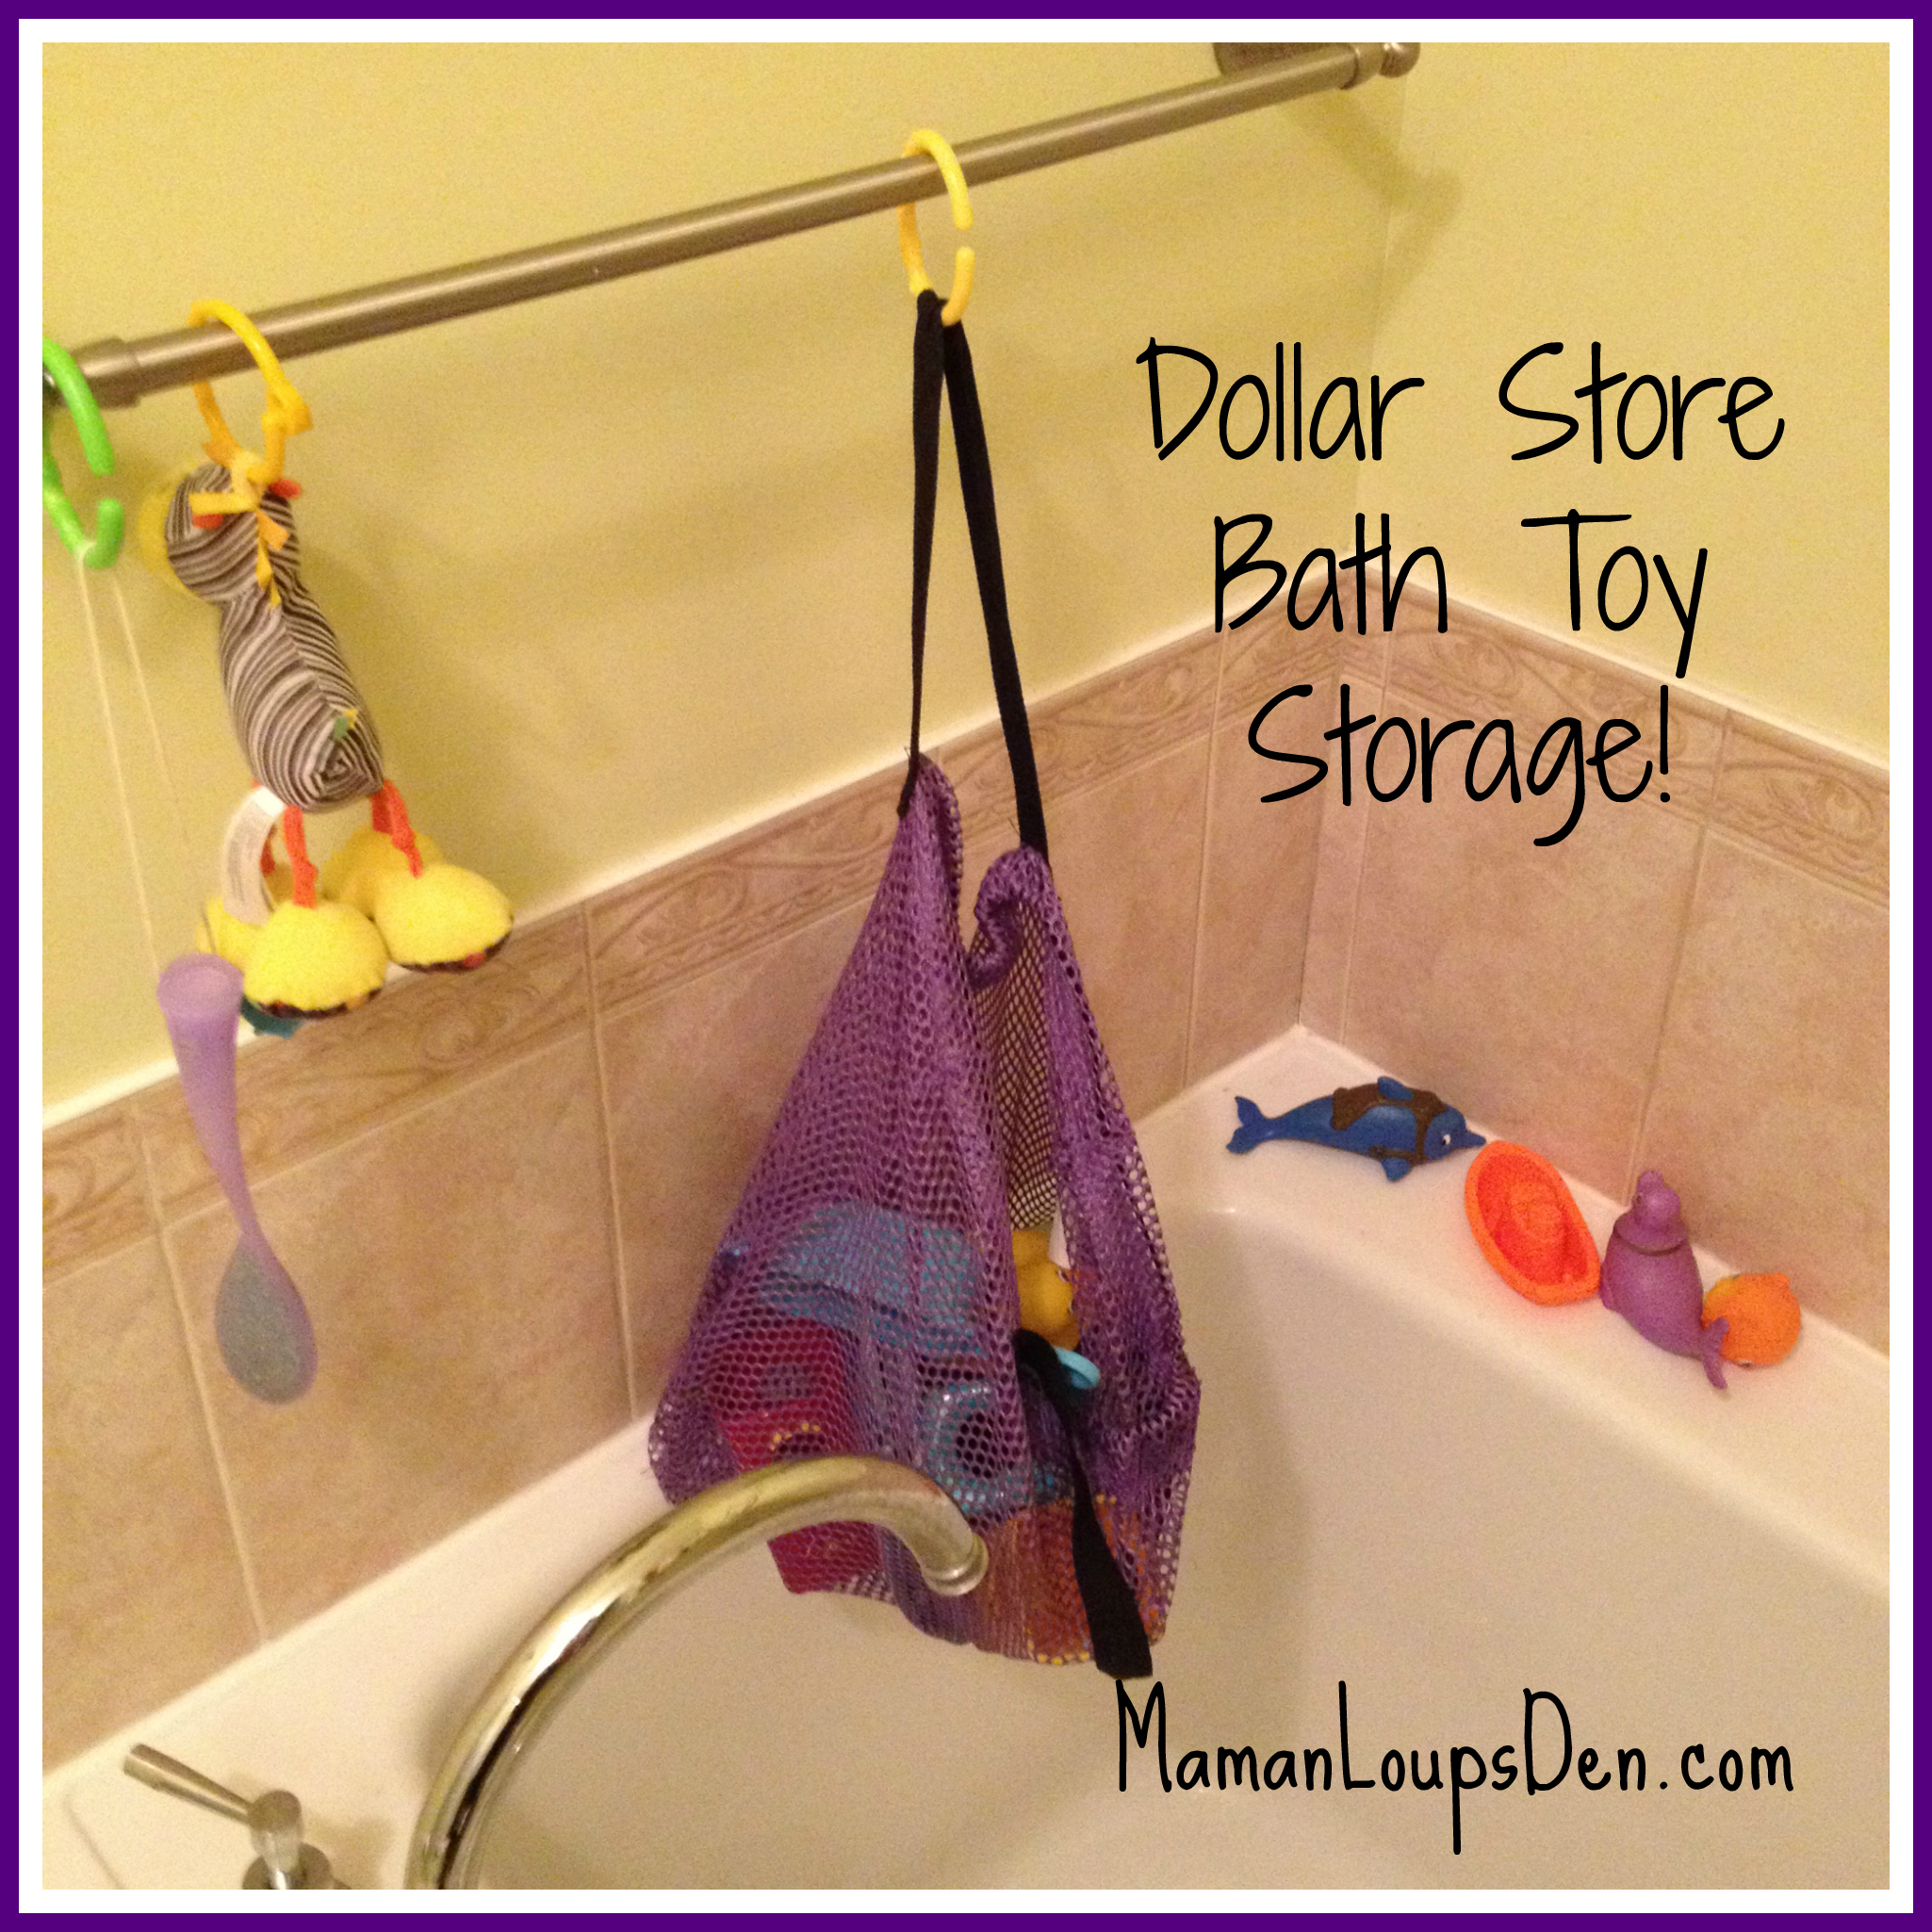 Dollarama Mesh Beach Bag Makes Great Bath Tub Storage!